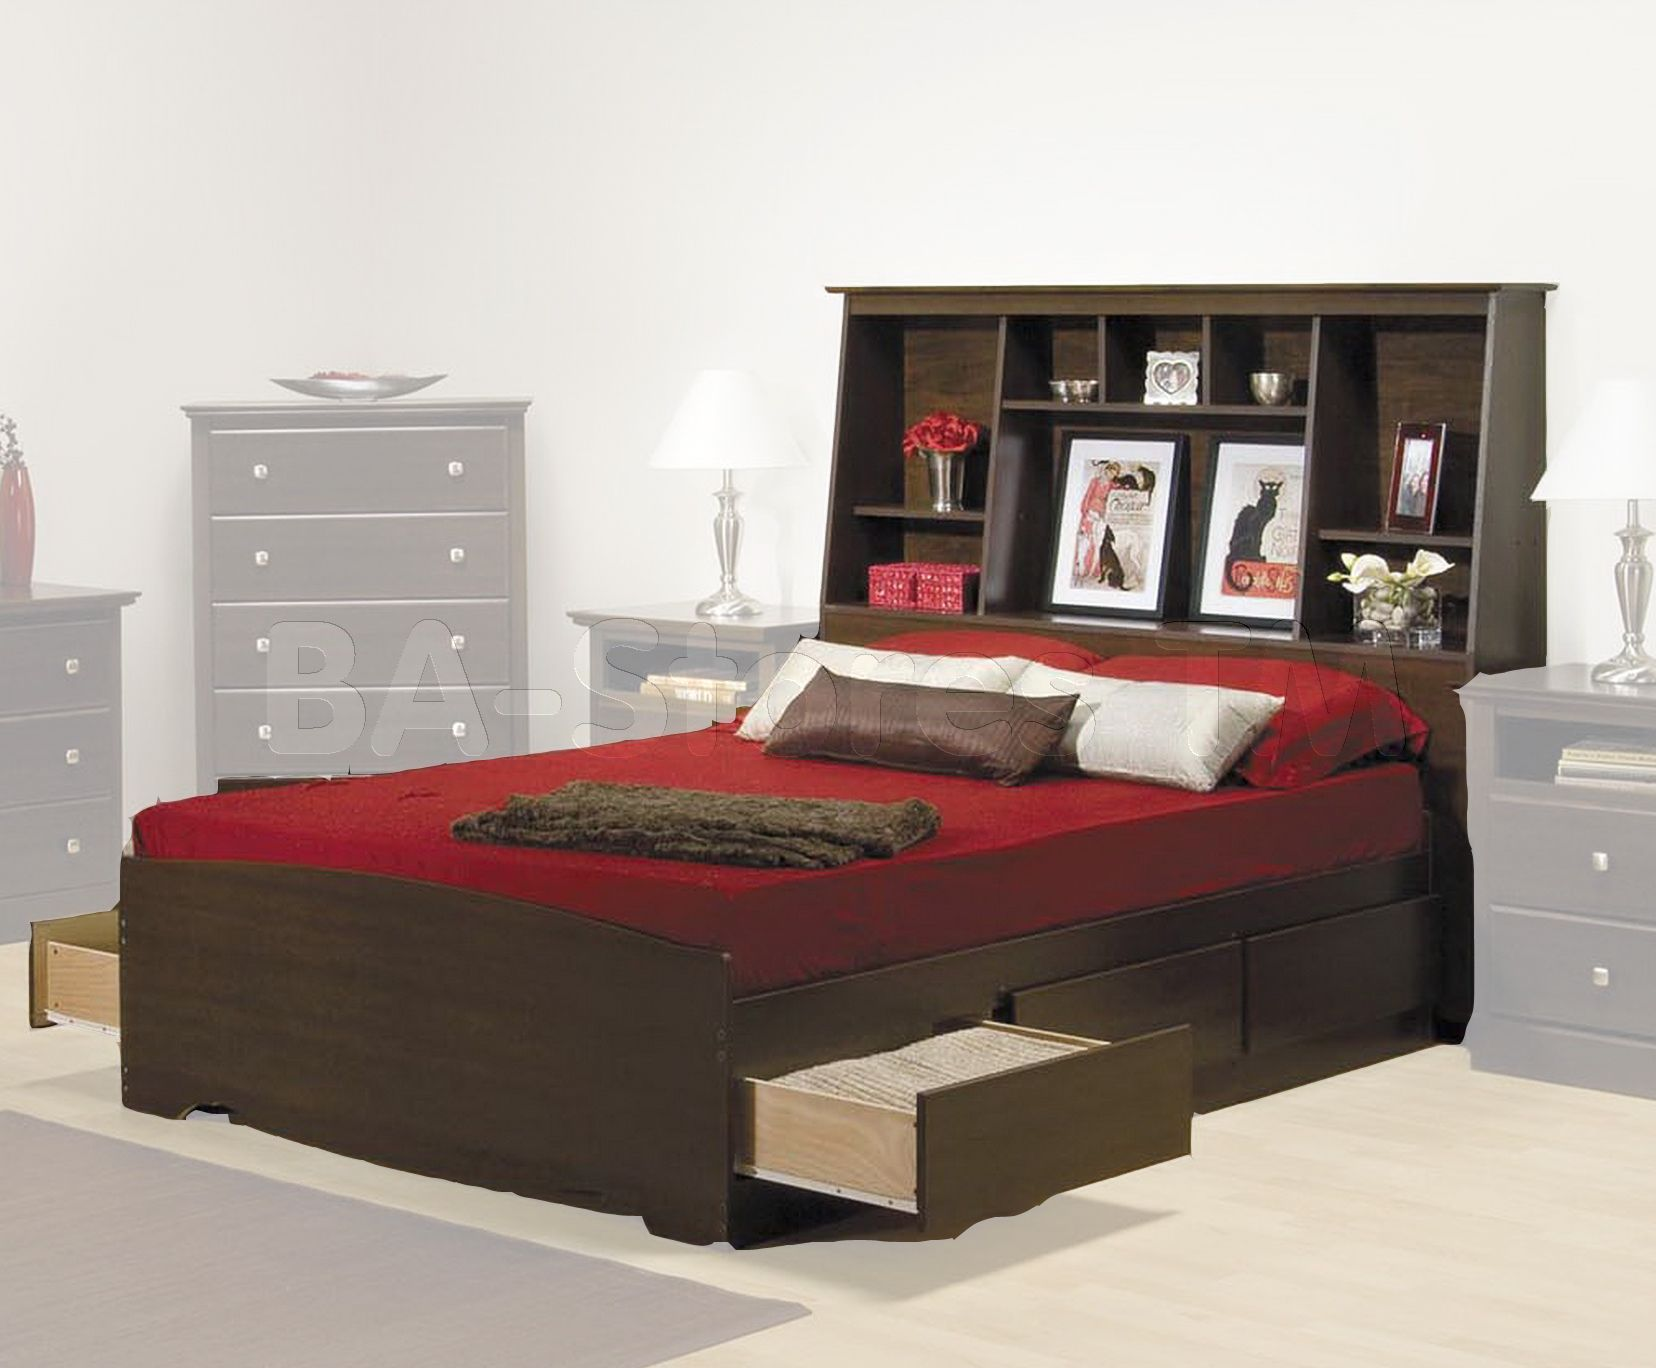 Prepac fremont platform storage bed with bookcase Headboard with pictures